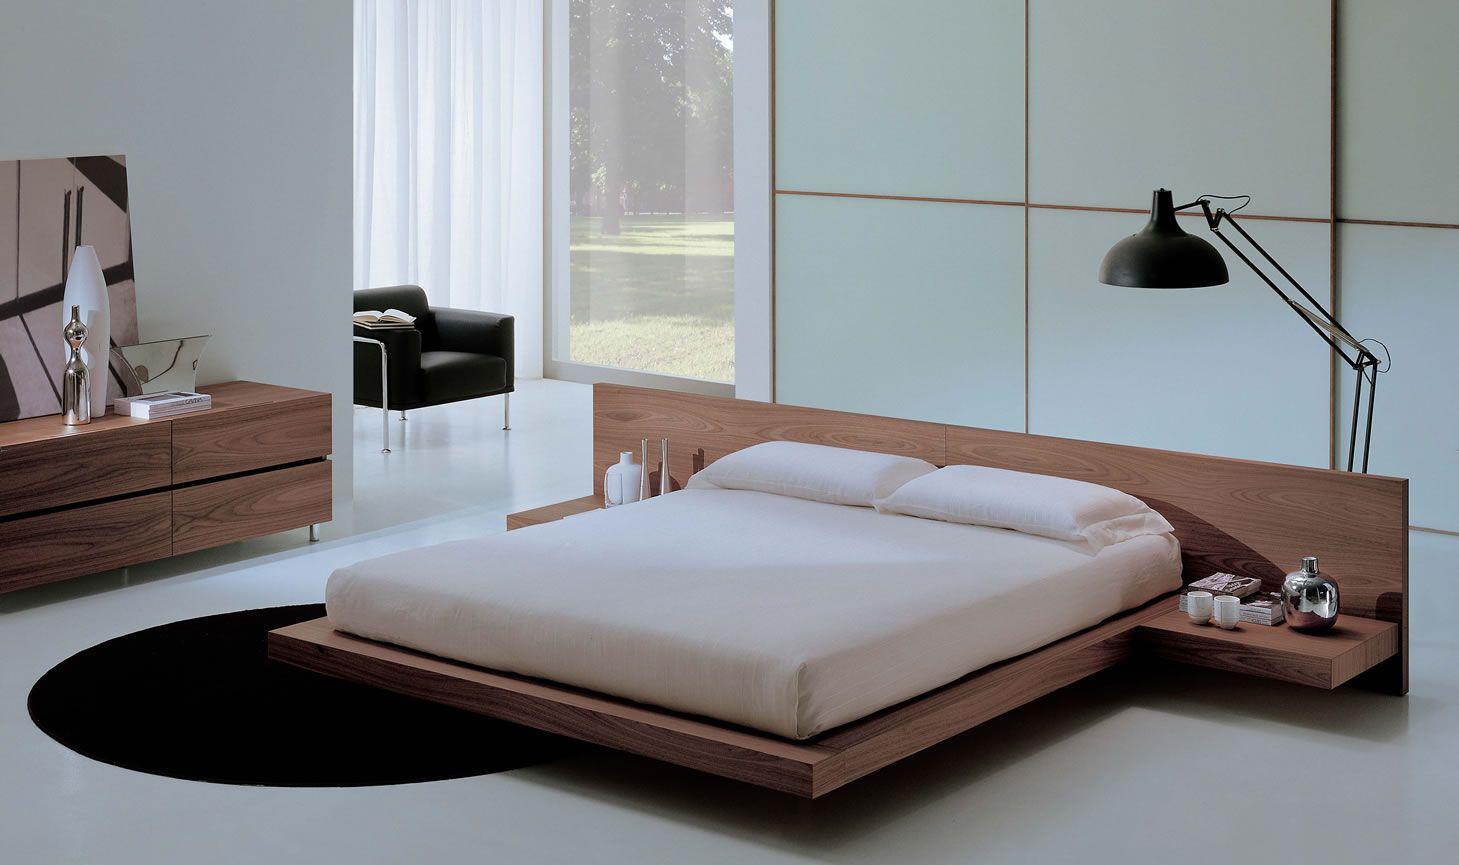 25 Amazing Platform Beds For Your Inspiration Ideas For The House